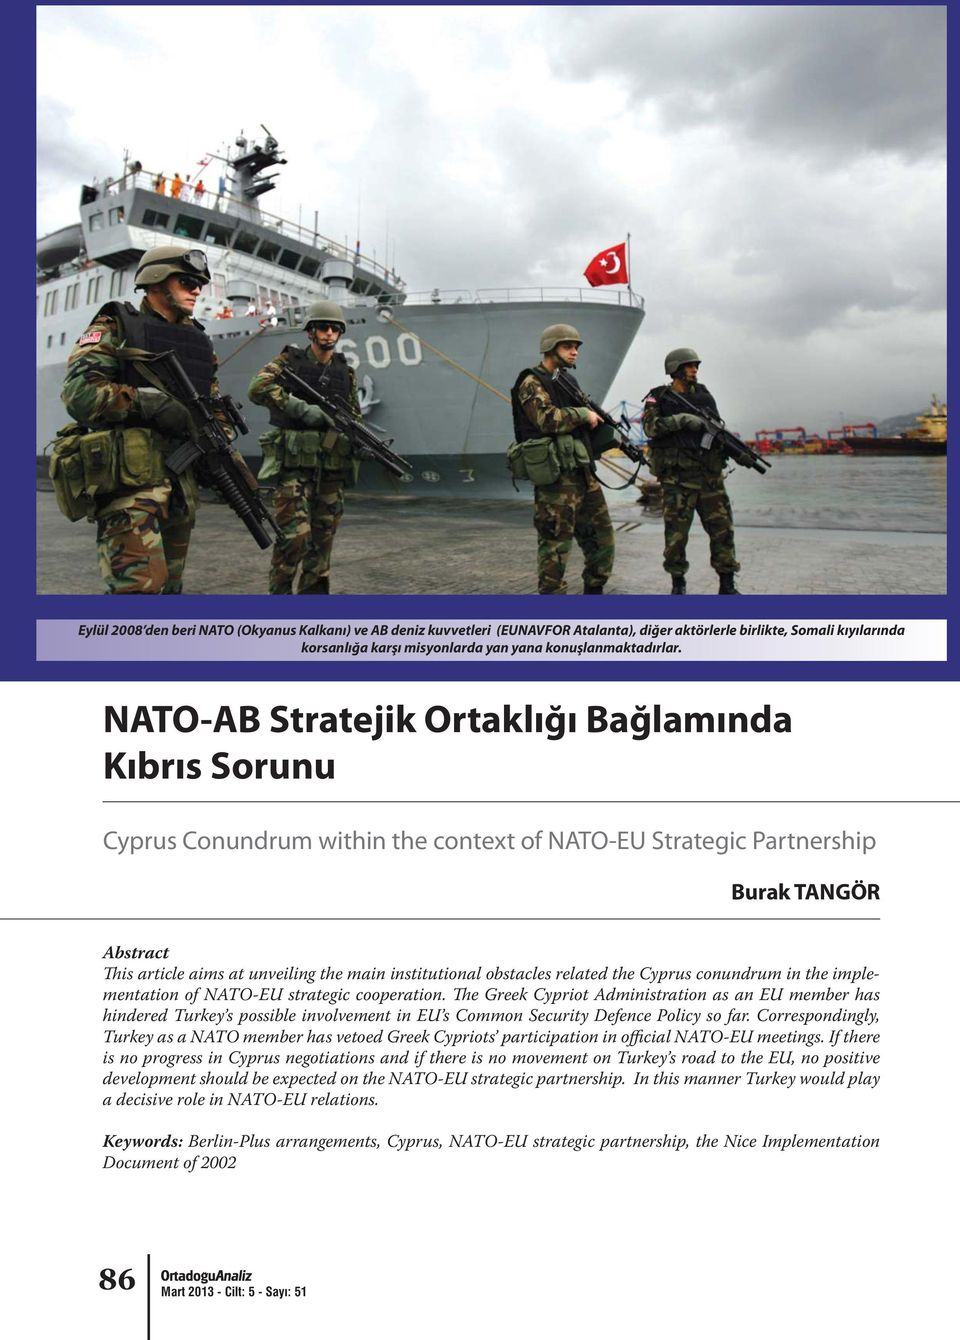 obstacles related the Cyprus conundrum in the implementation of NATO-EU strategic cooperation.